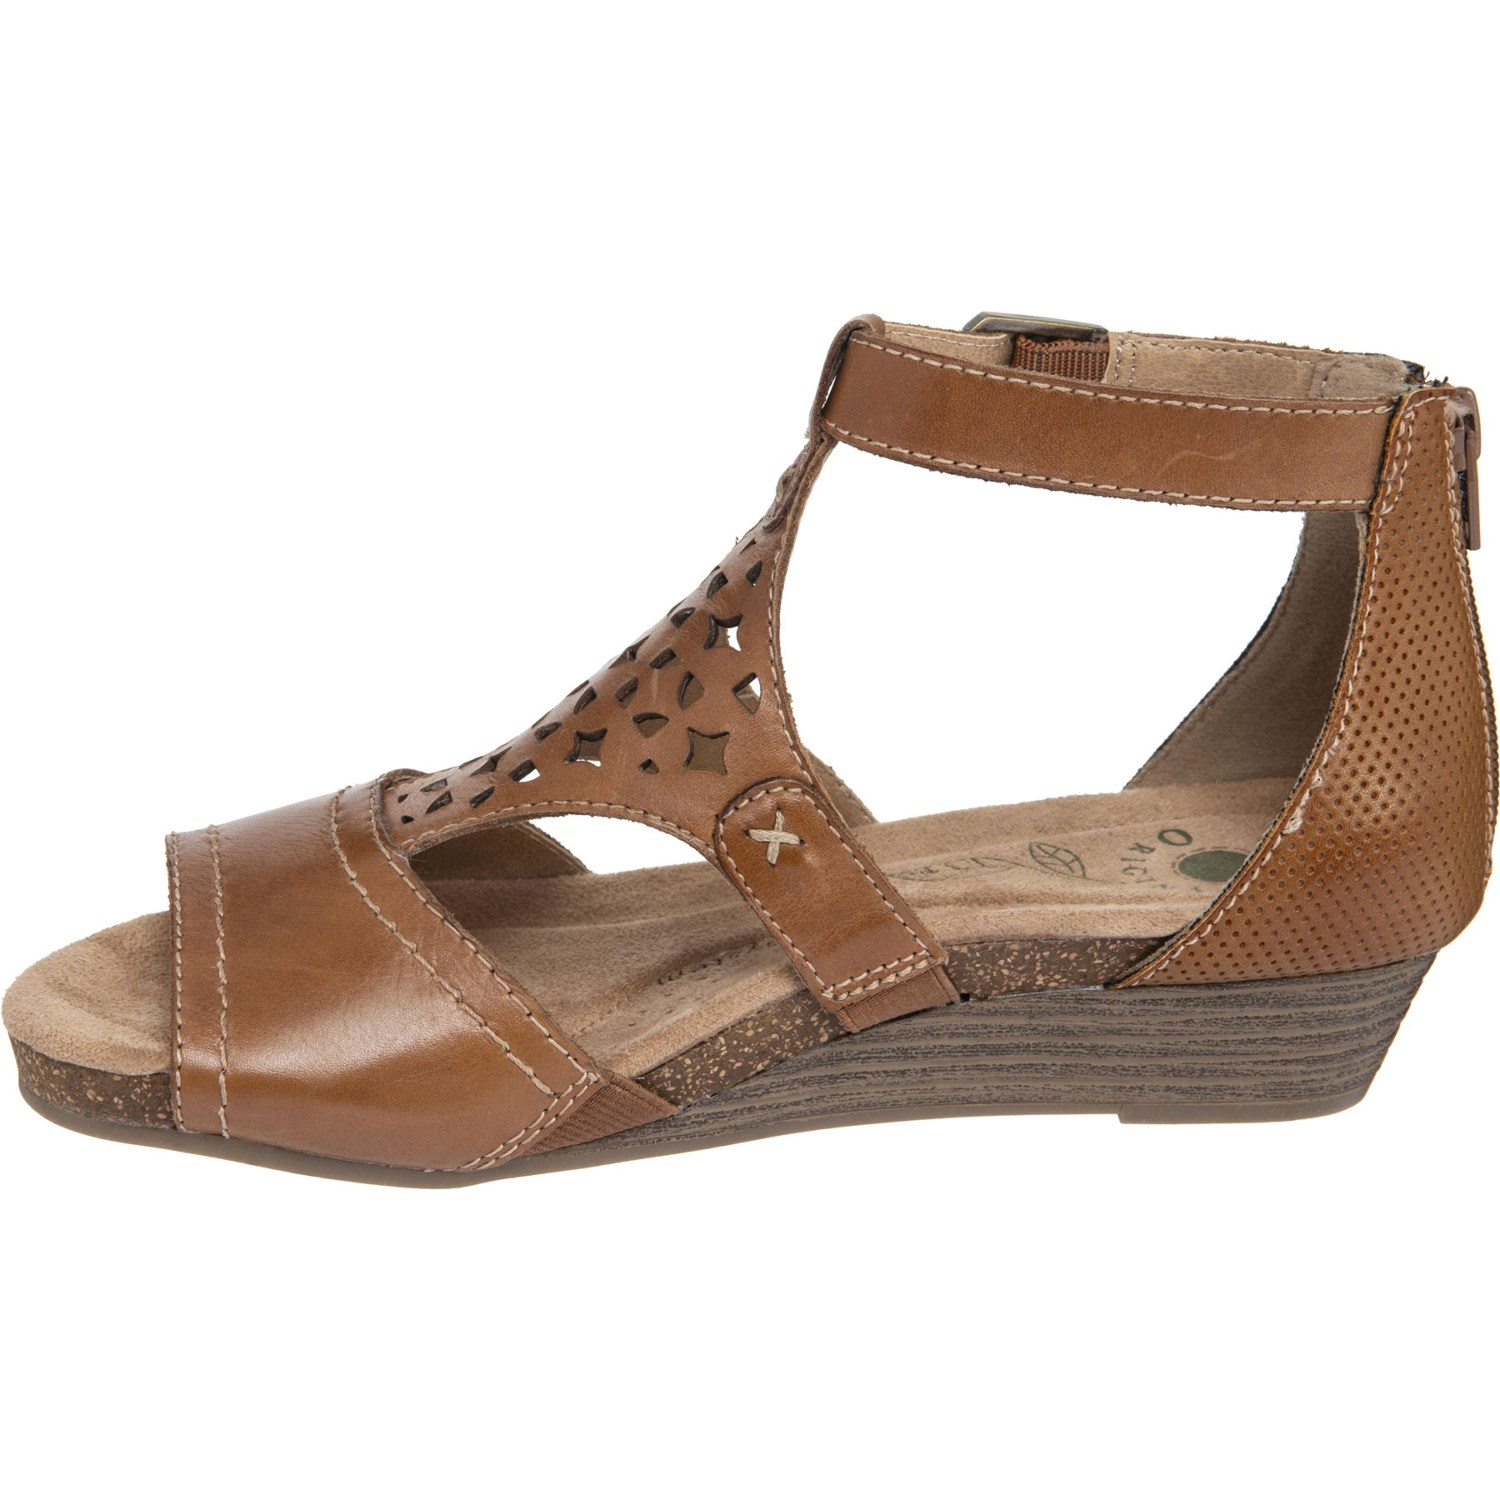 60f3a004efdd Earth Origins Hermia T-Strap Sandals (For Women) - Save 40%